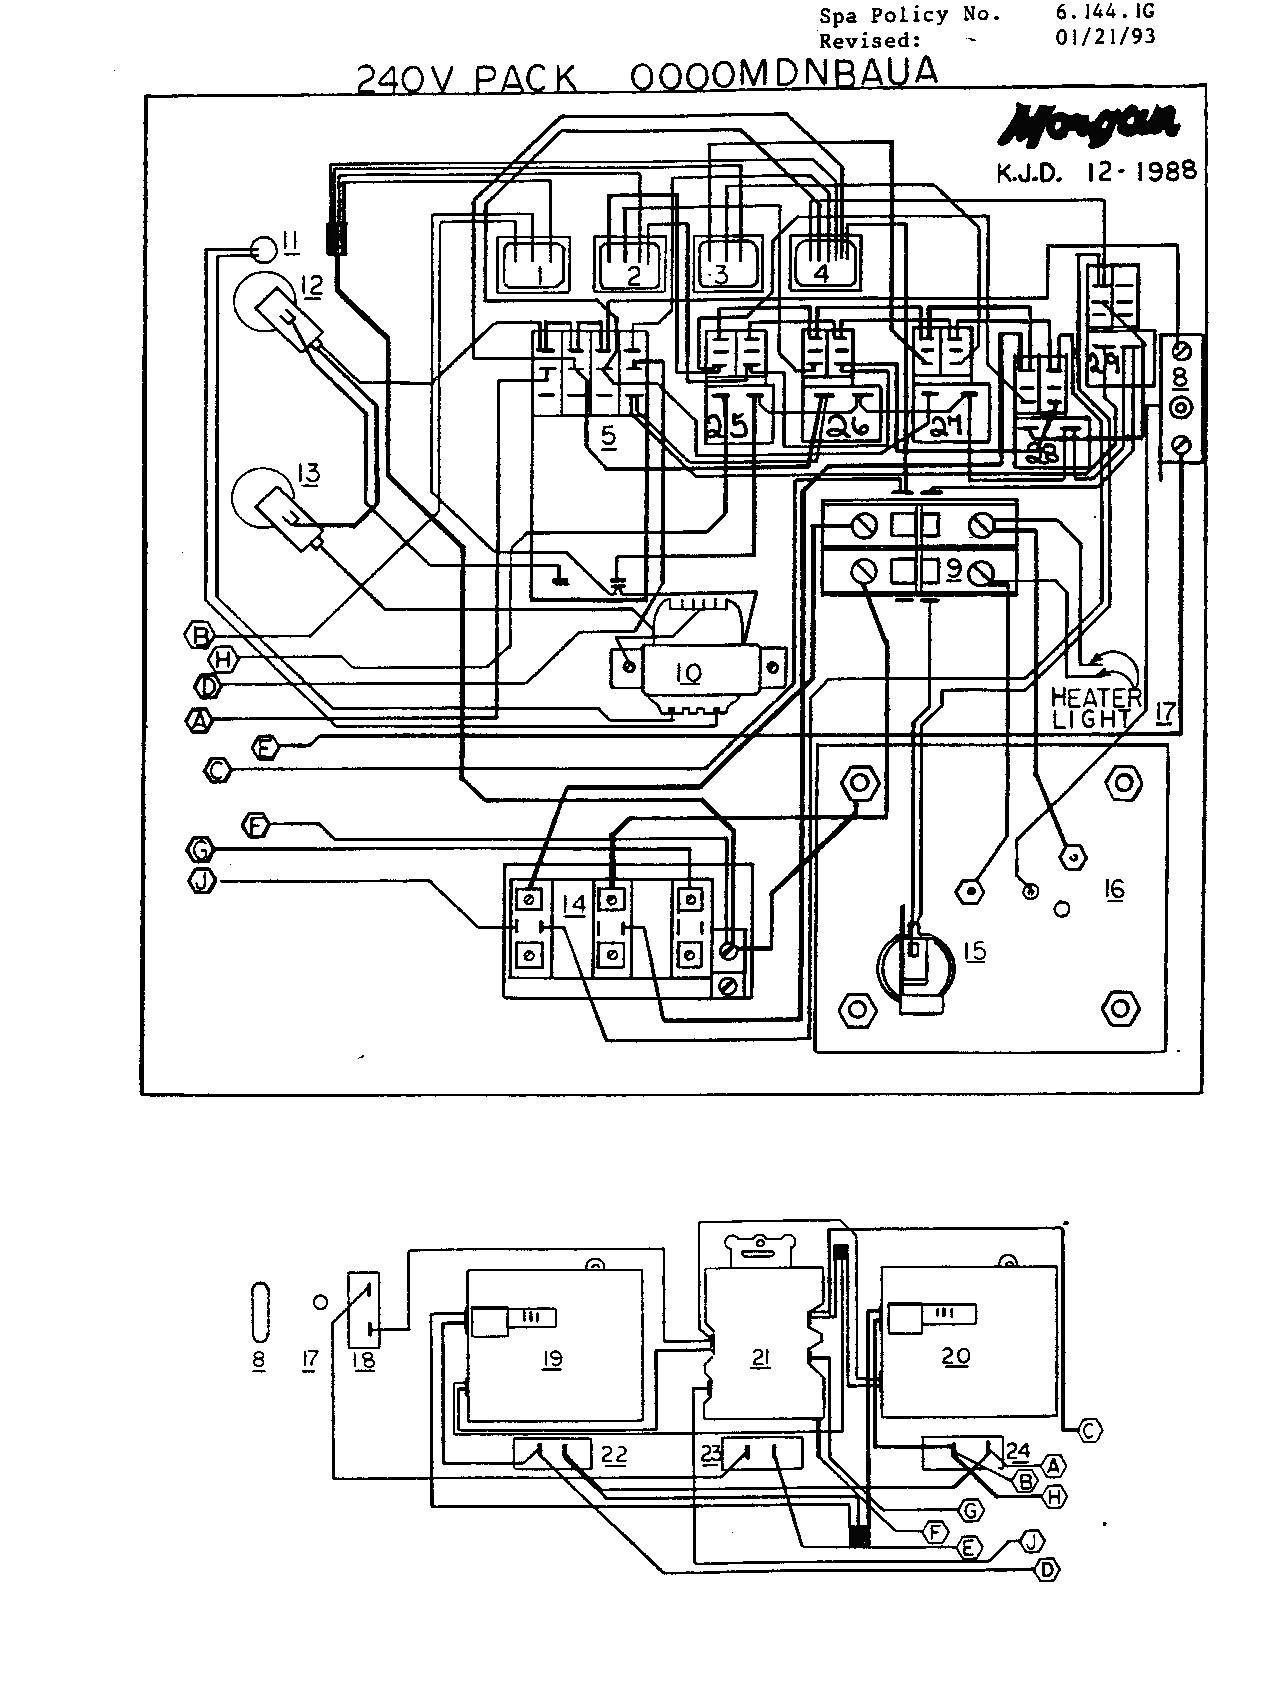 Hot Spring Spa Wiring Diagram Best Of Wiring Diagram Image